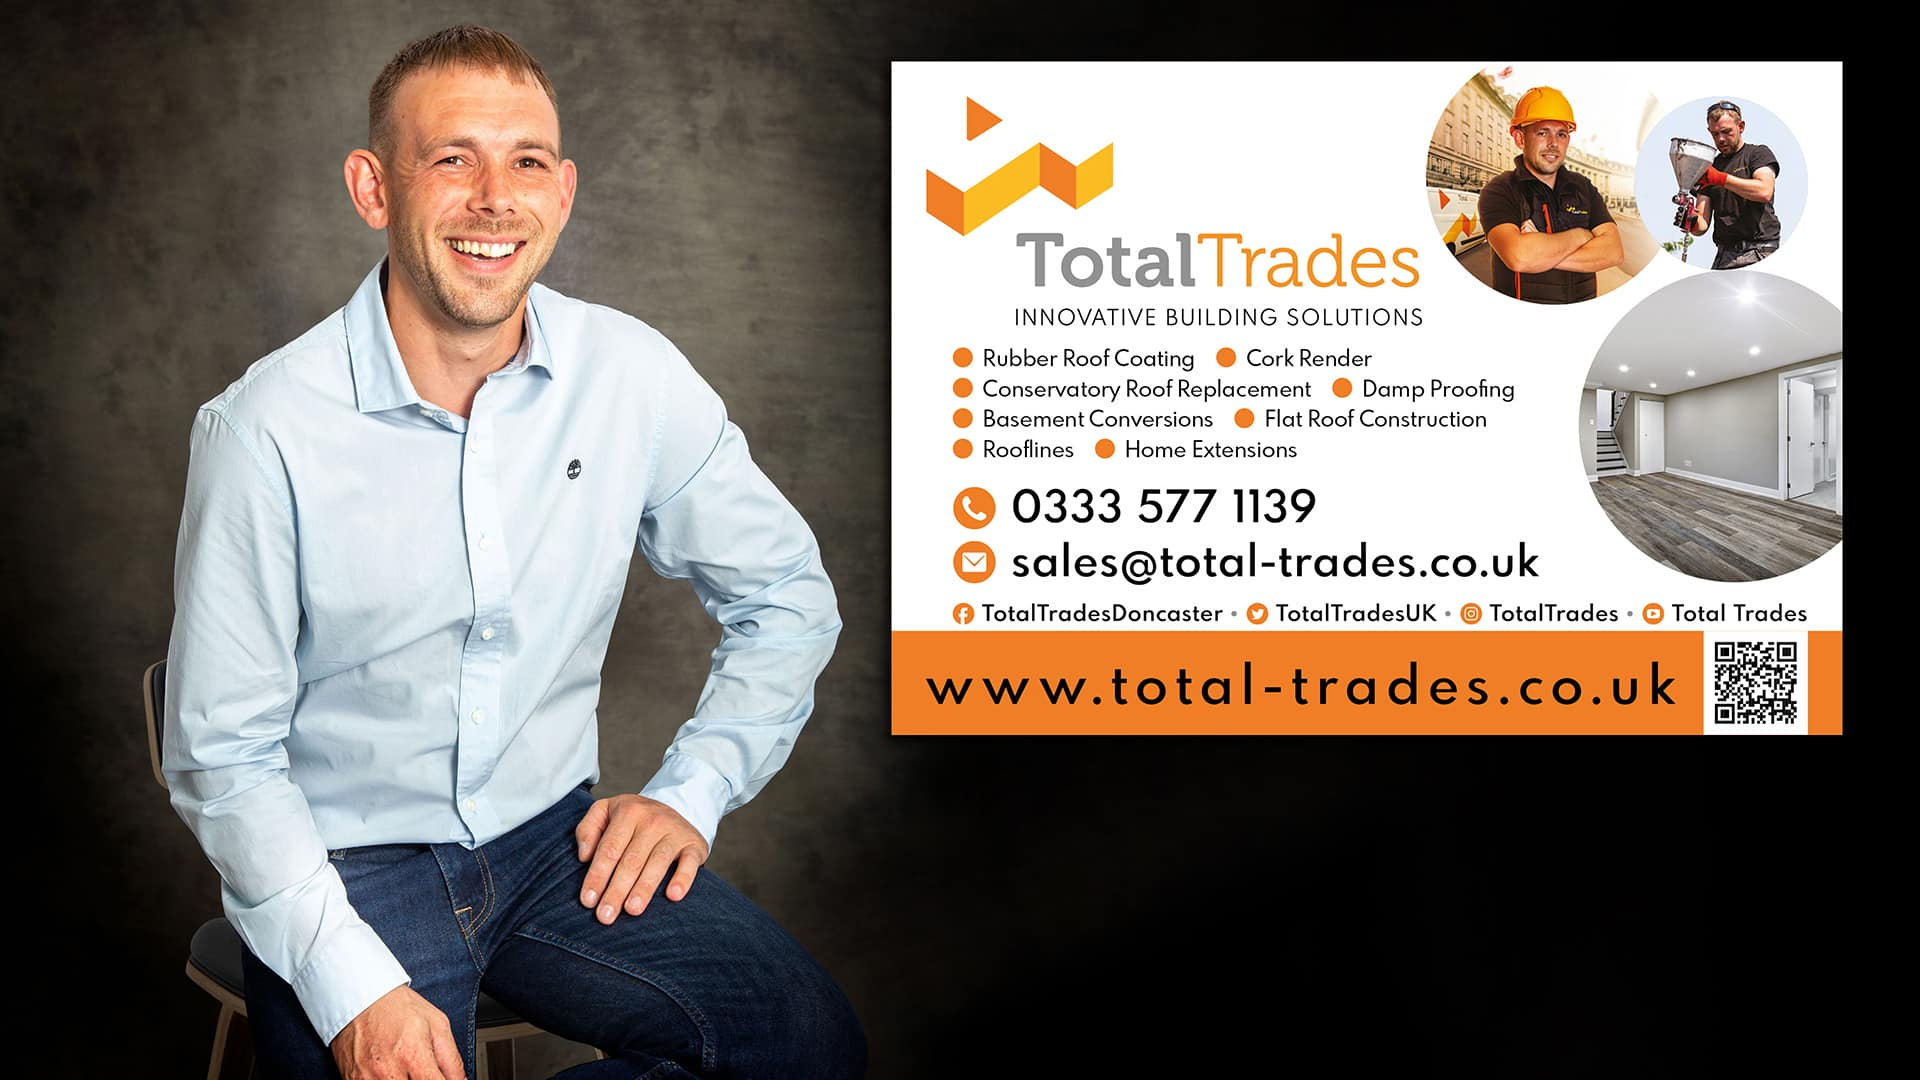 Total Trades Image 5